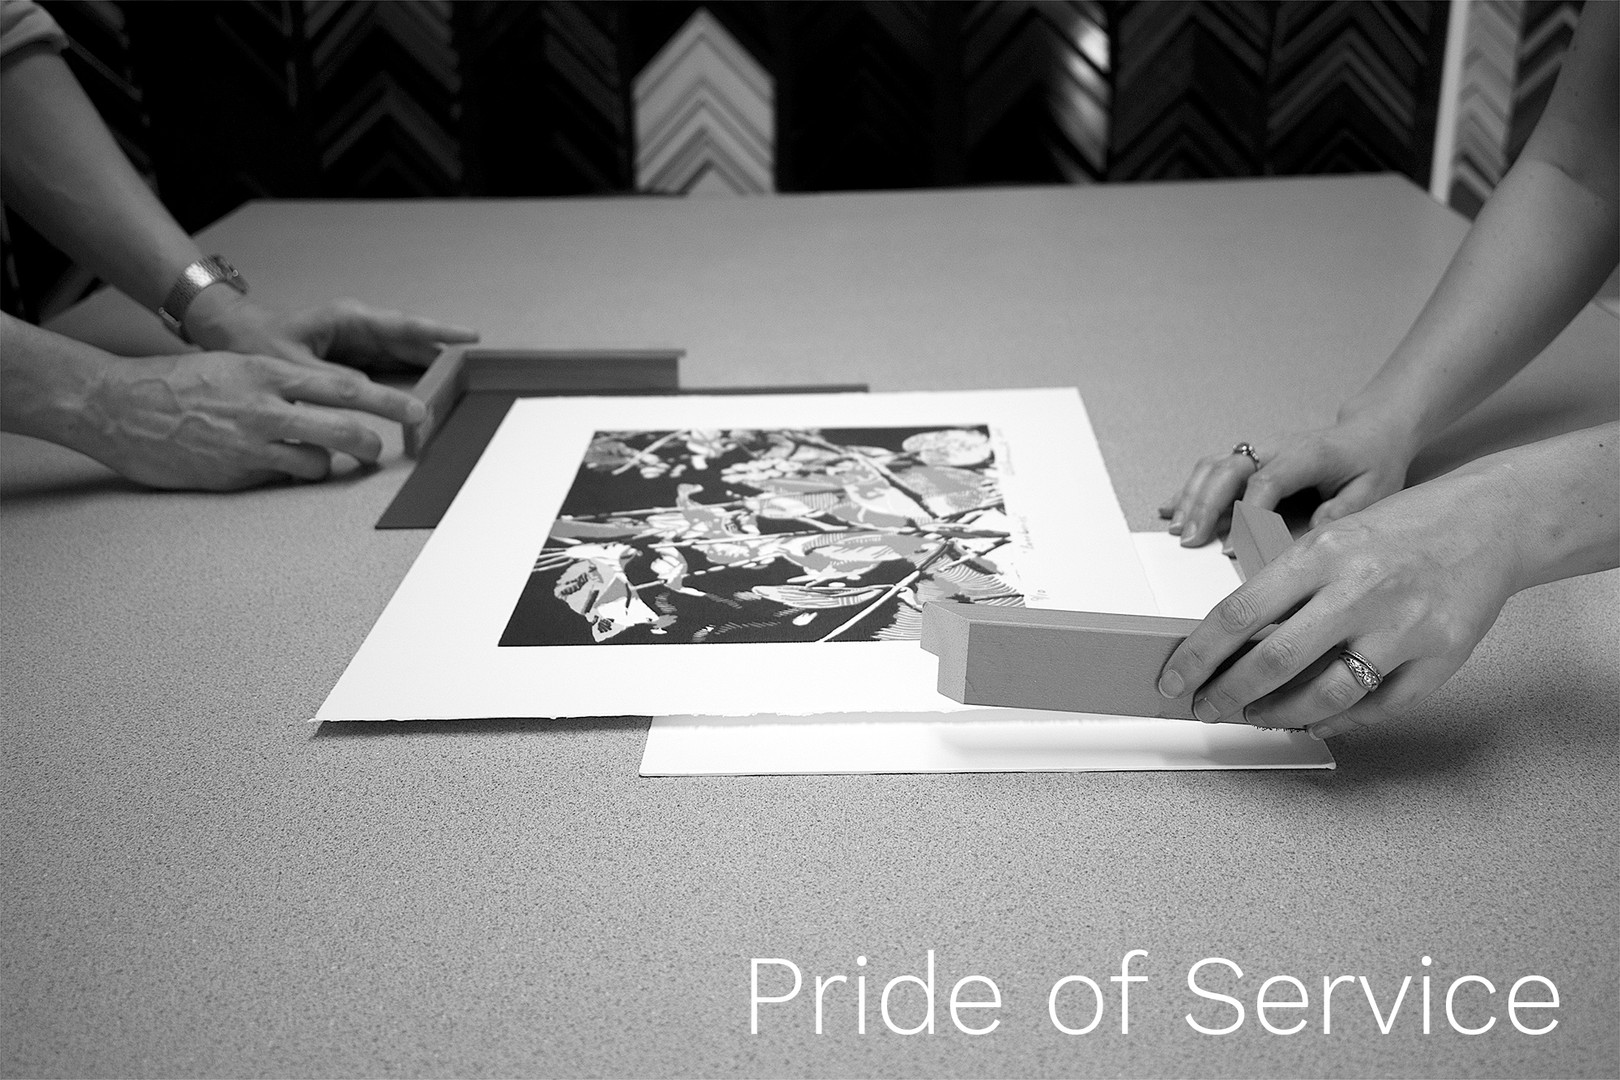 Pride of Service: We work with our customers one on one to make sure we deliver what they need.